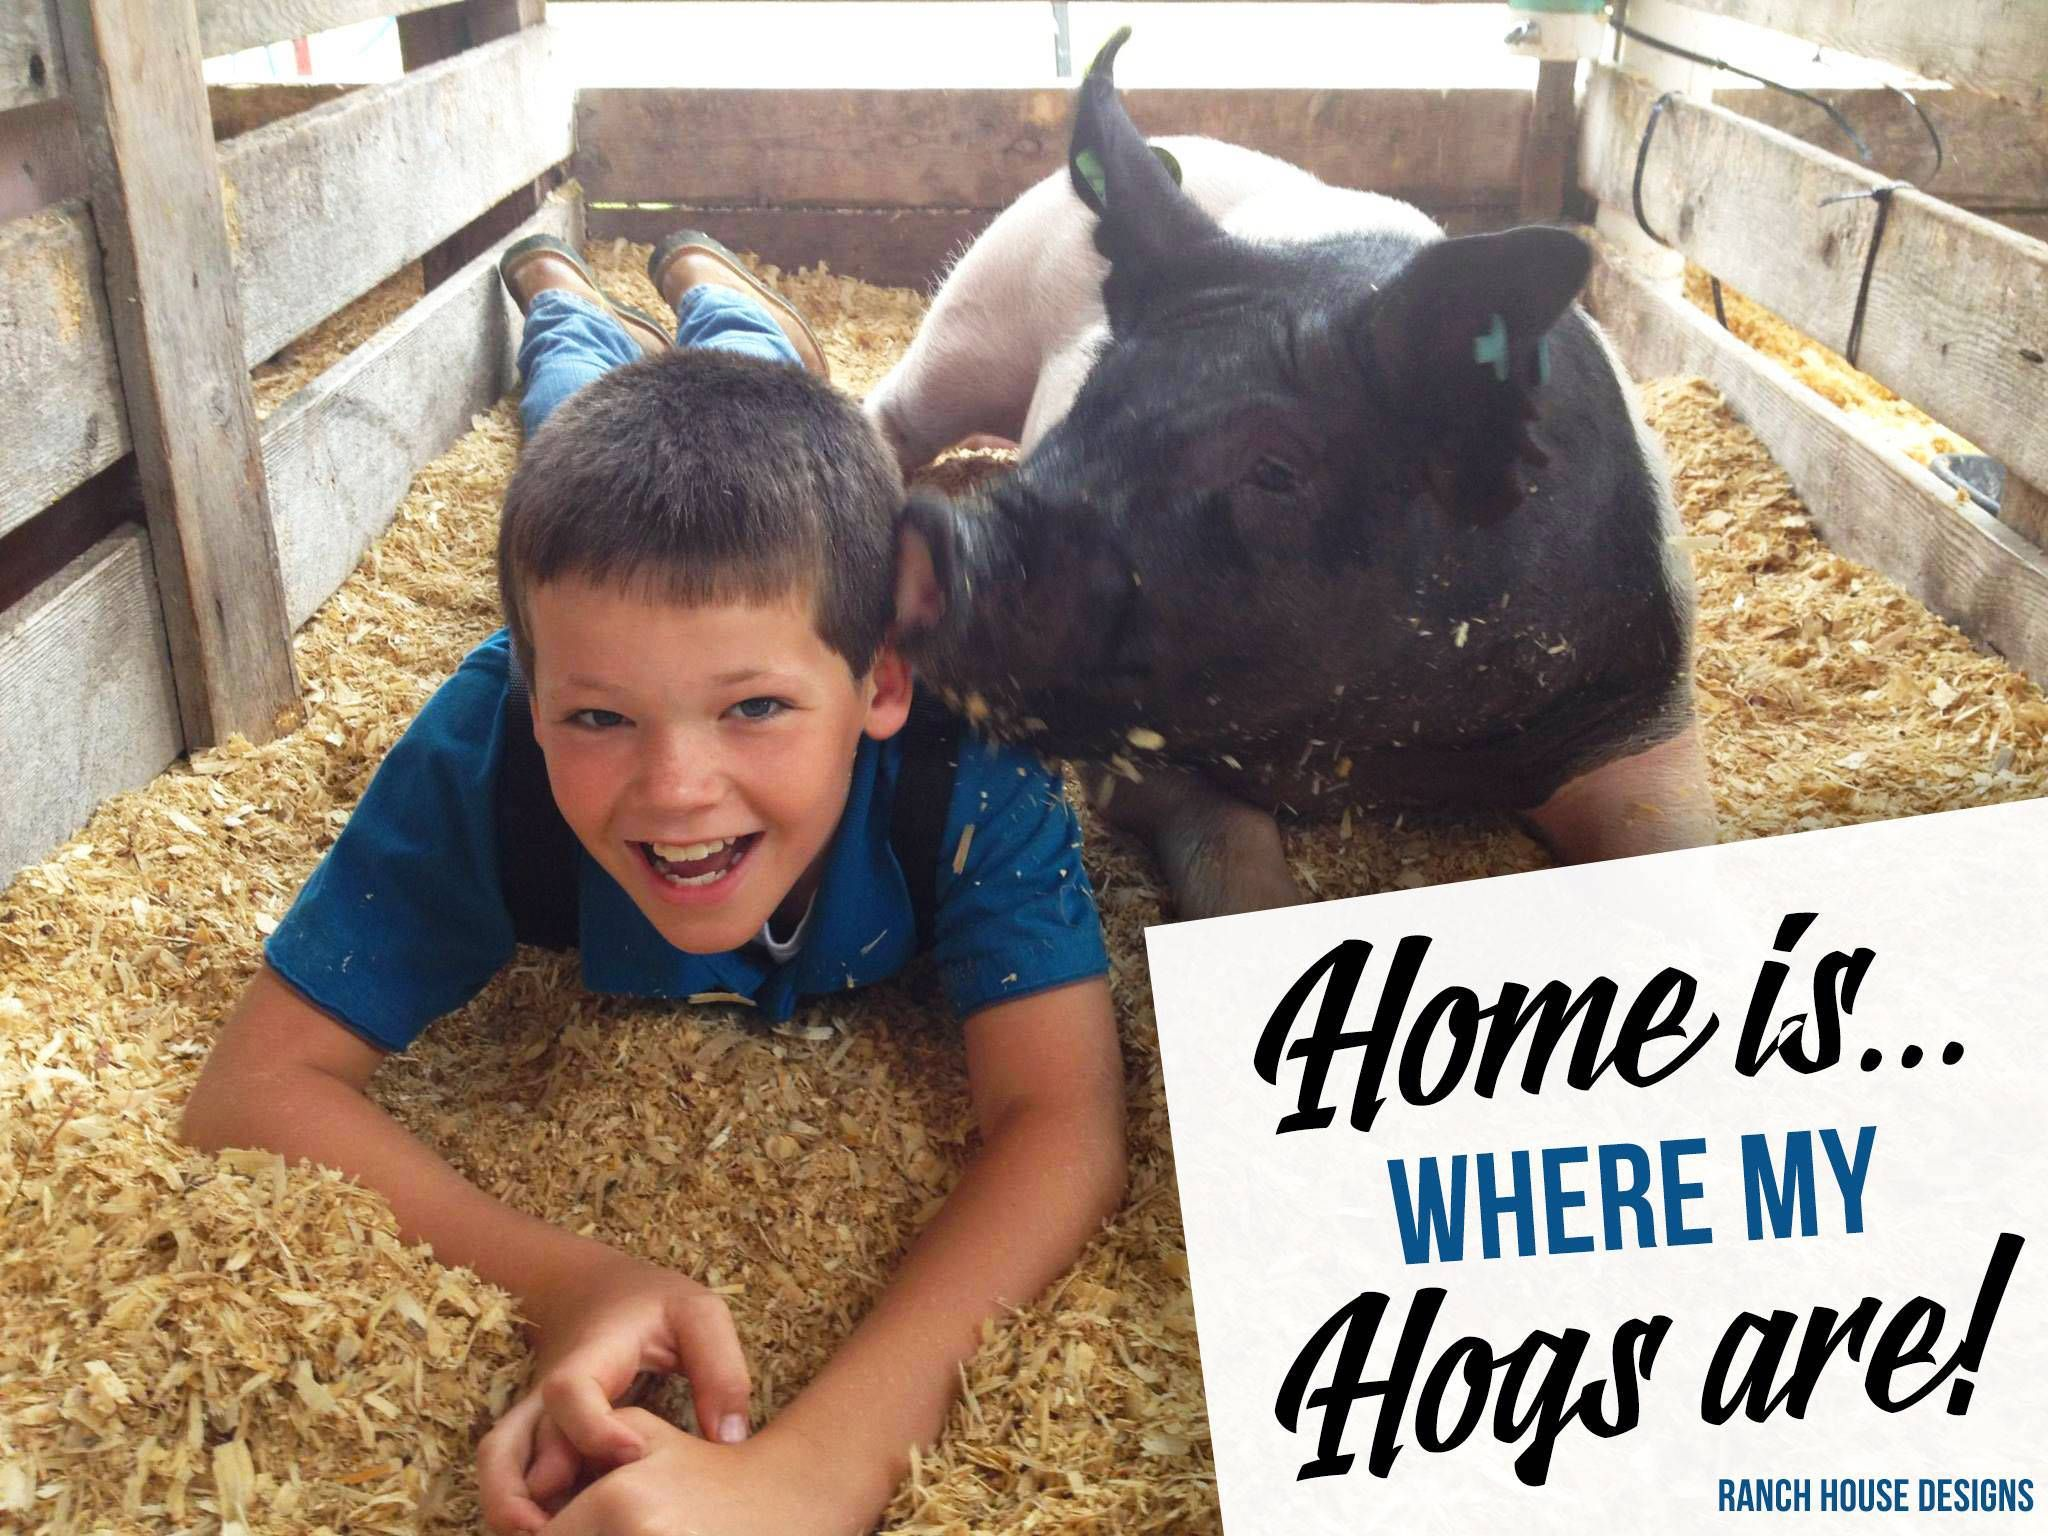 Home Is Where My Hogs Are - Ranch House Designs Livestock ... Ranch House Designs Pig on pig pool, pig bathroom, bird cage design, crate design, barn design, pig cooking, pig drawing, pig home, pig floor, bbq smoker design, silo design, pig door, pig sofa, pig painting, pig lamps, pig fabric, pig shelter, poultry farm design, pig accessories, pig food,